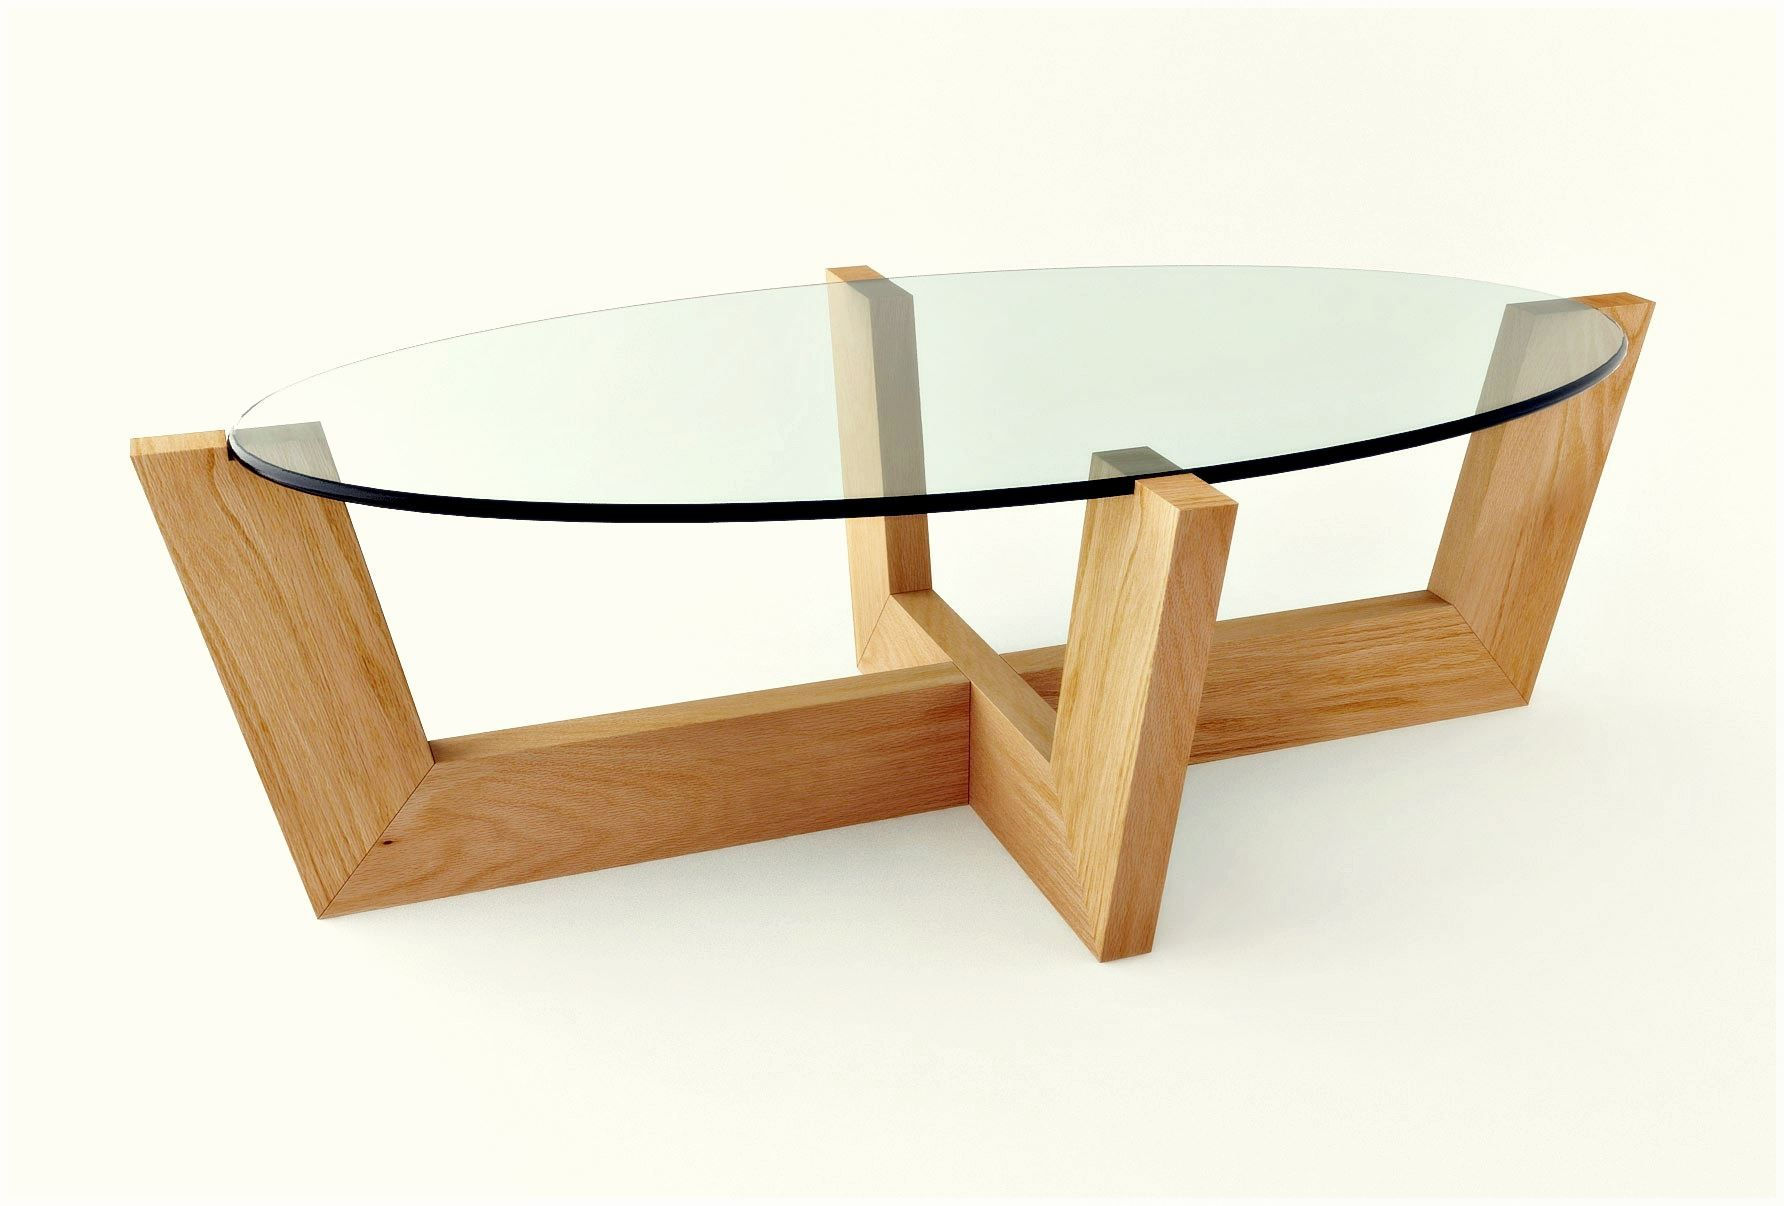 Glass coffee table in living room interior living room simple and stylish clear glass oval top coffee